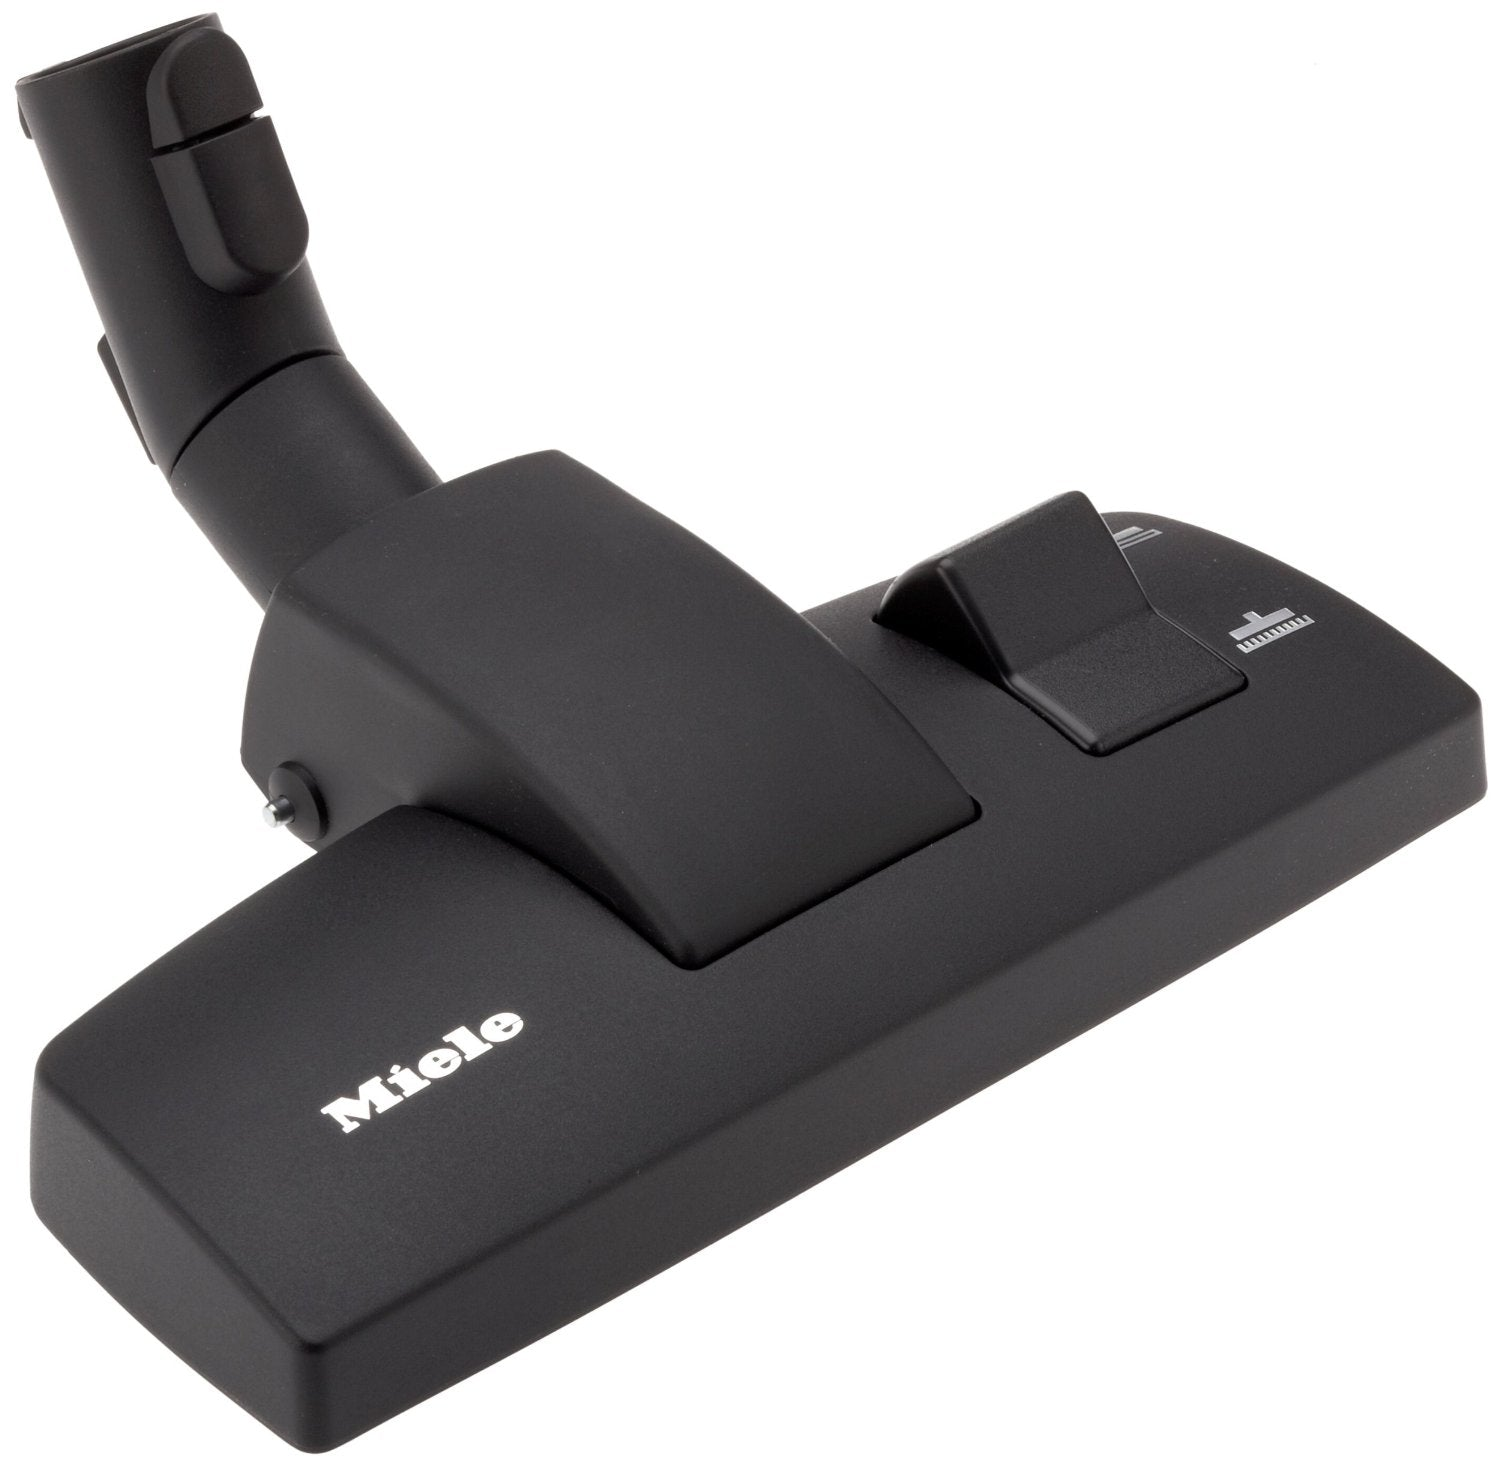 Miele SBD 285 Adjustable Floor Brush